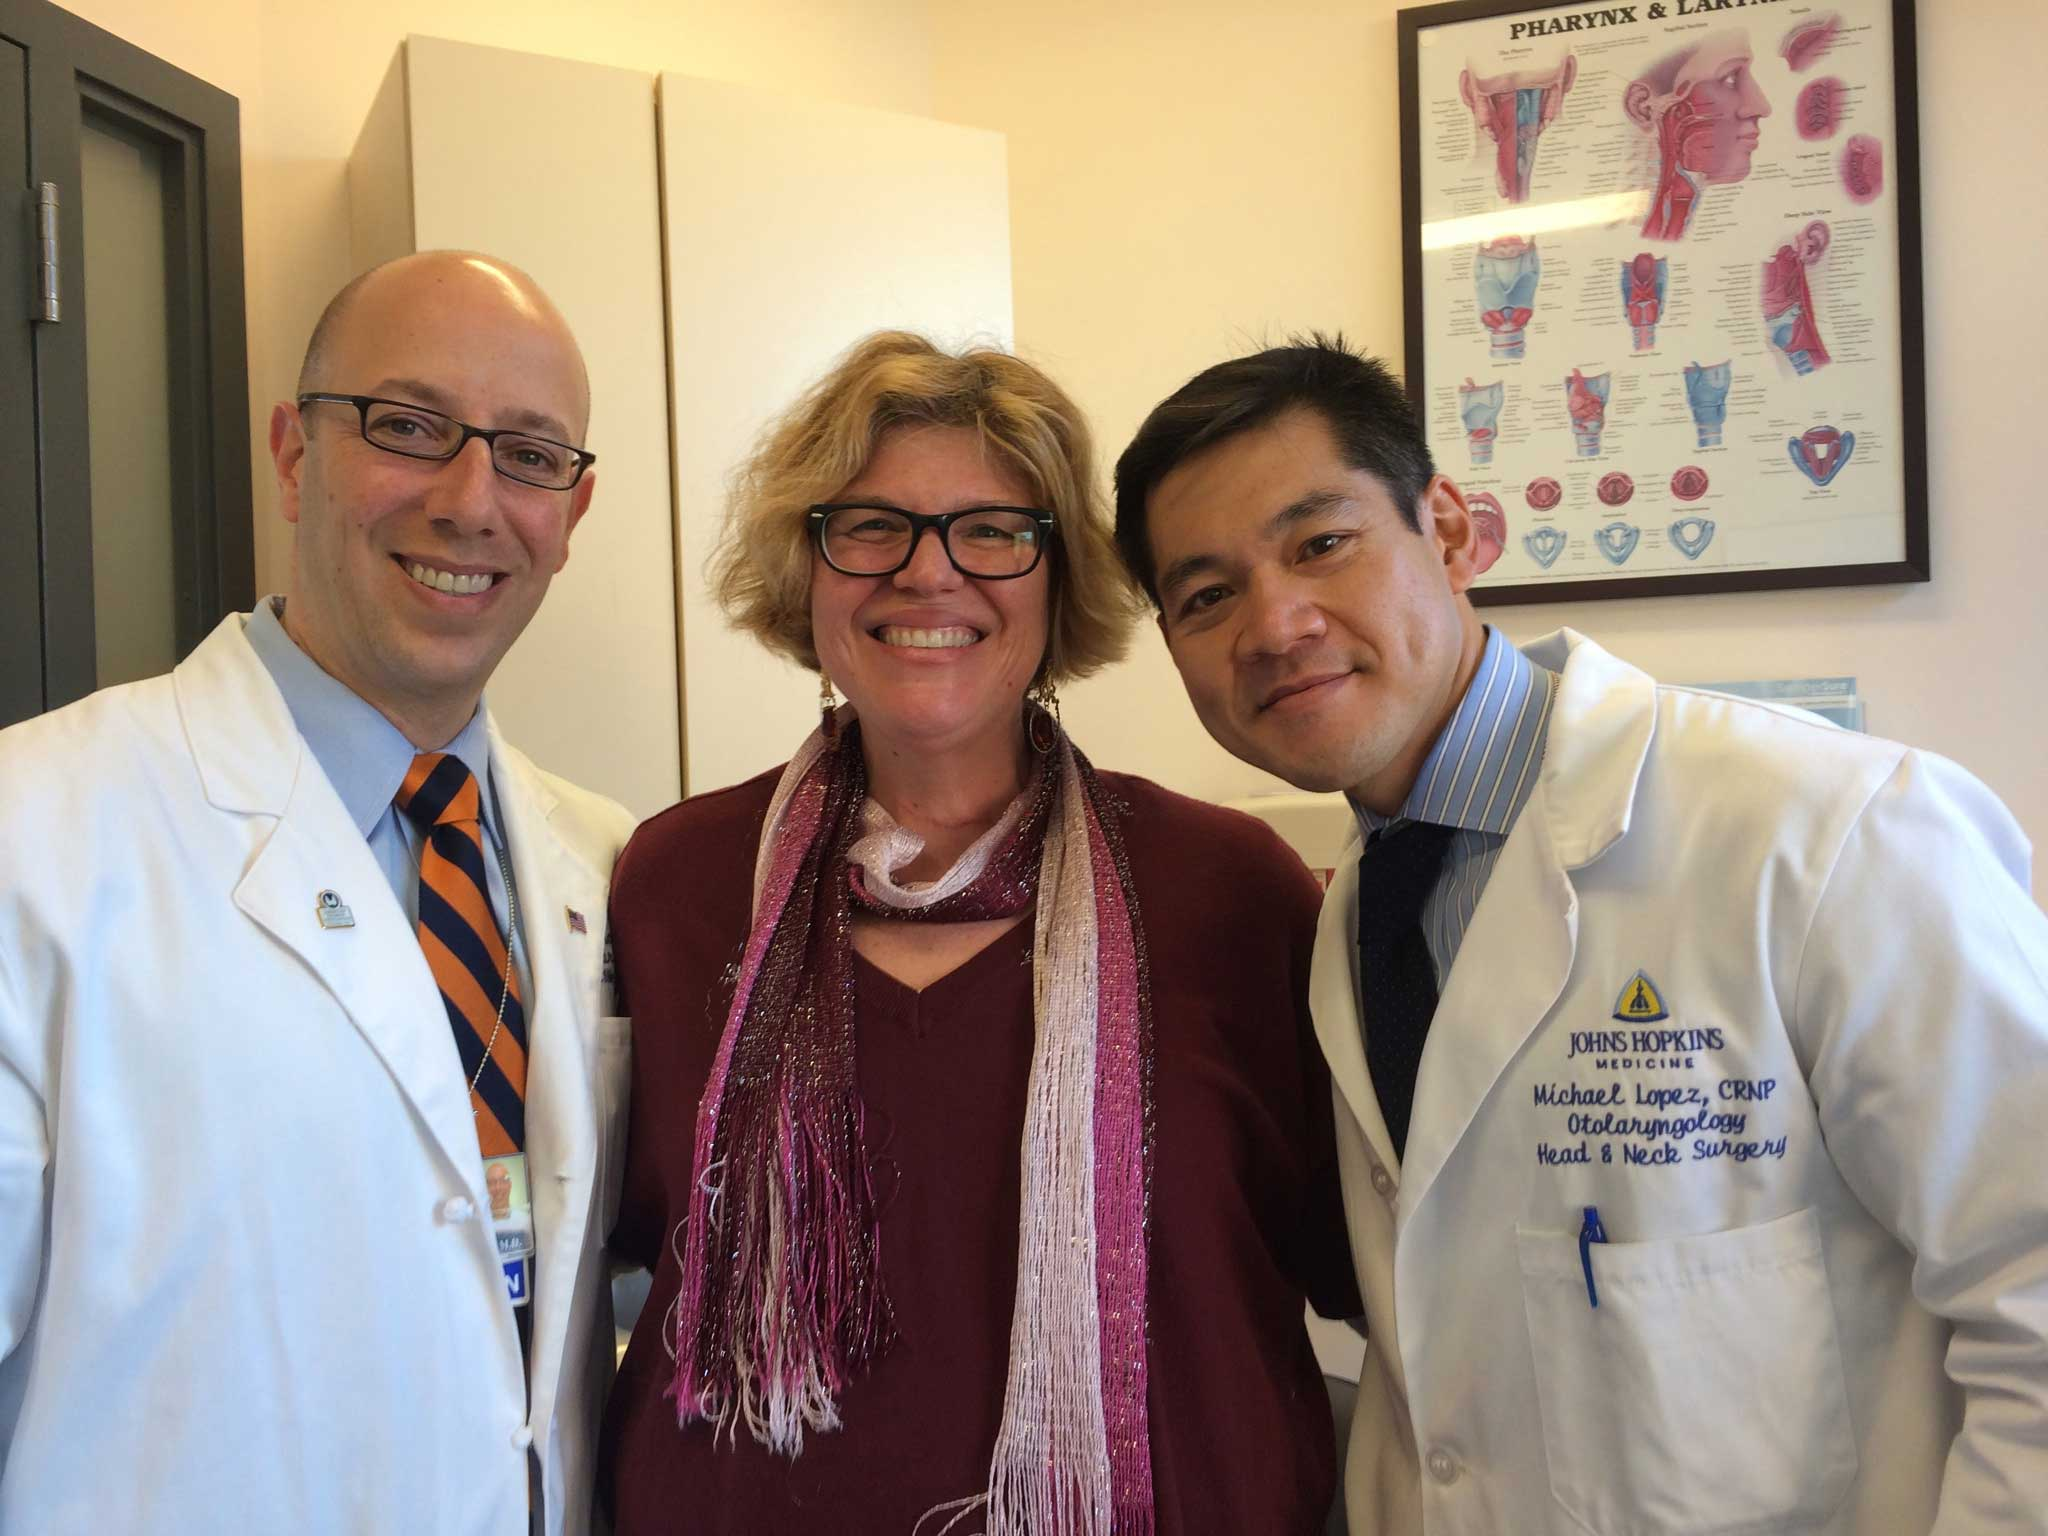 Dr. Tufano and Dr. Lopez with patient Roberta Perry